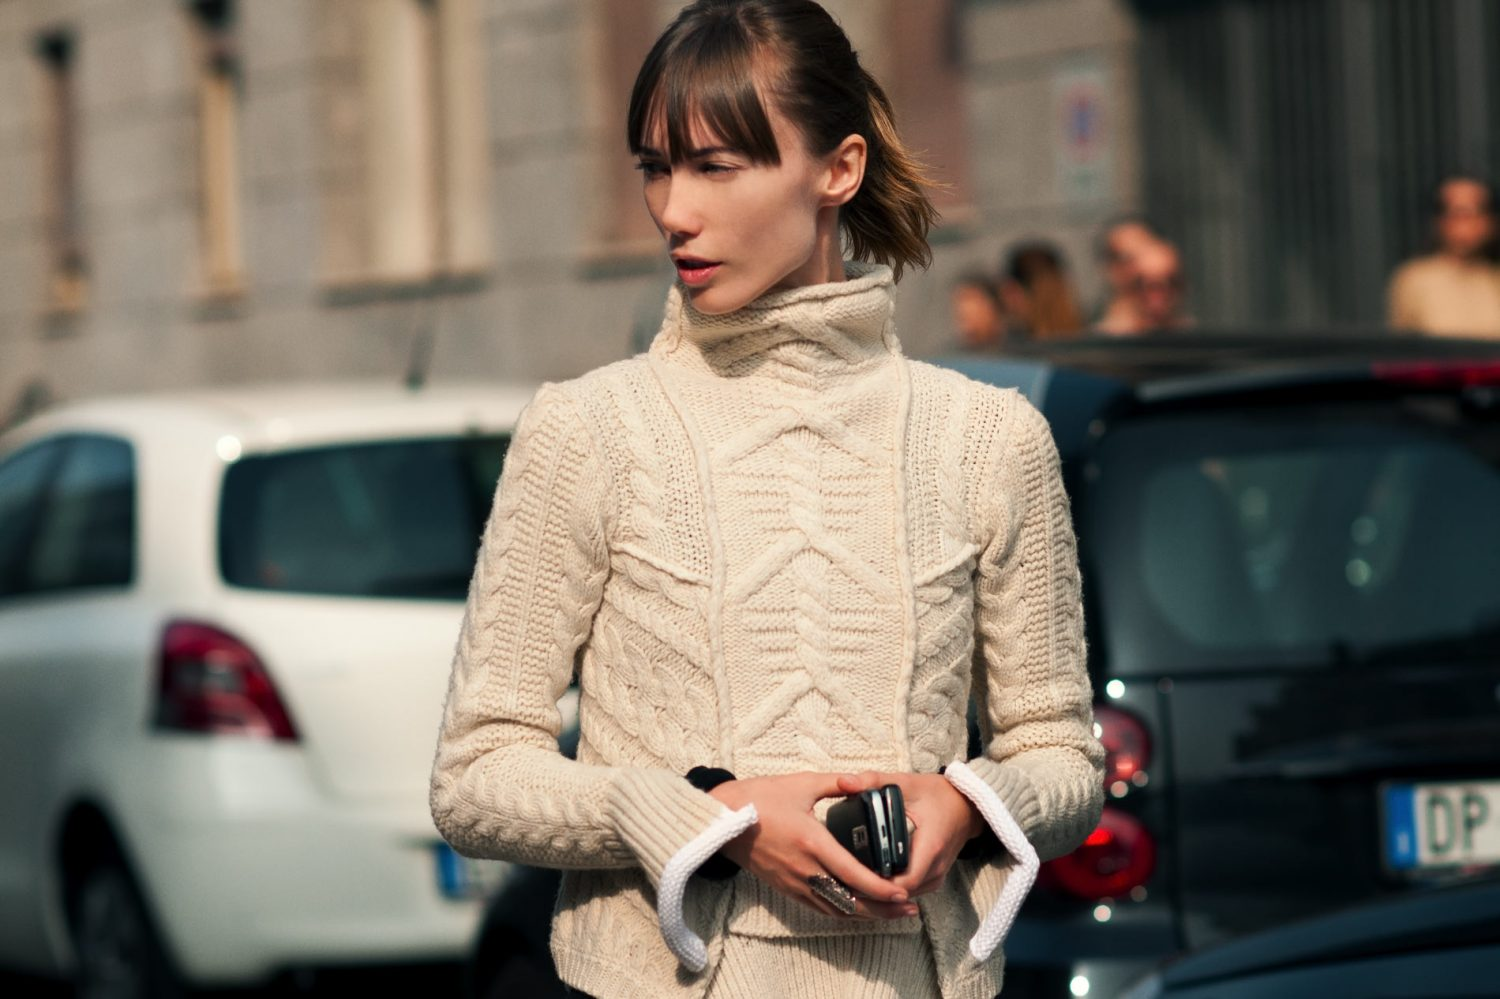 Anya Ziourova at Milan Fashion Week Spring/Summer 2012